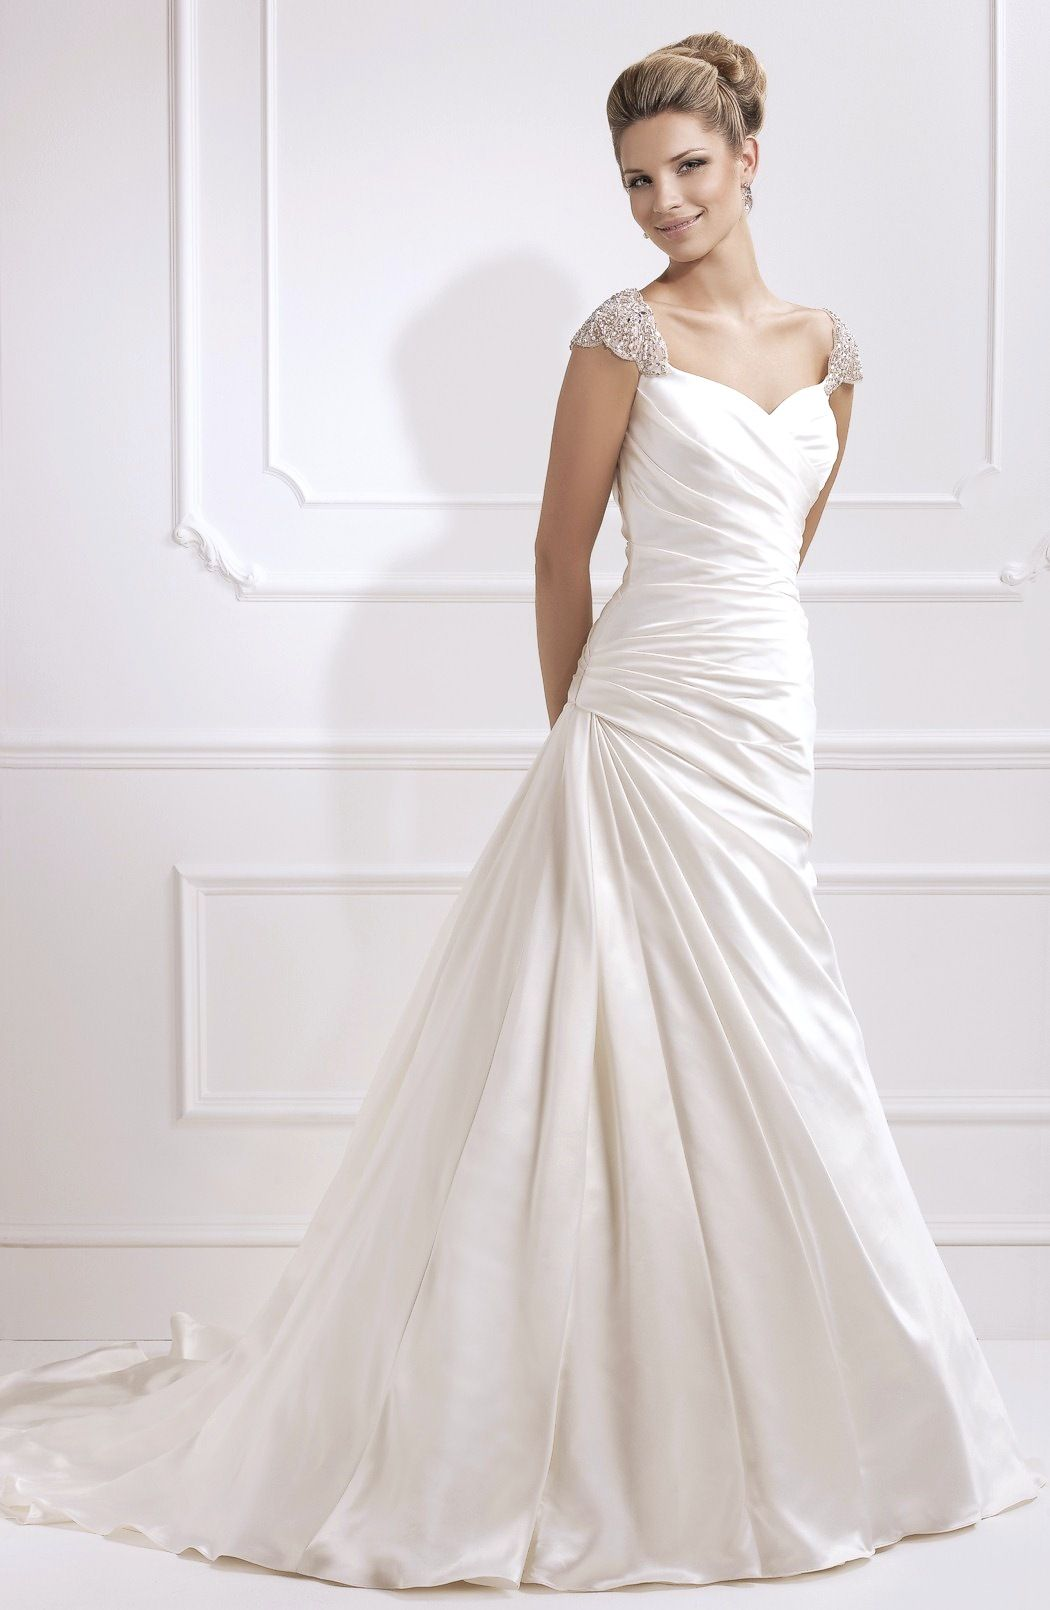 Ellis bridals style wedding dresses pinterest ellis